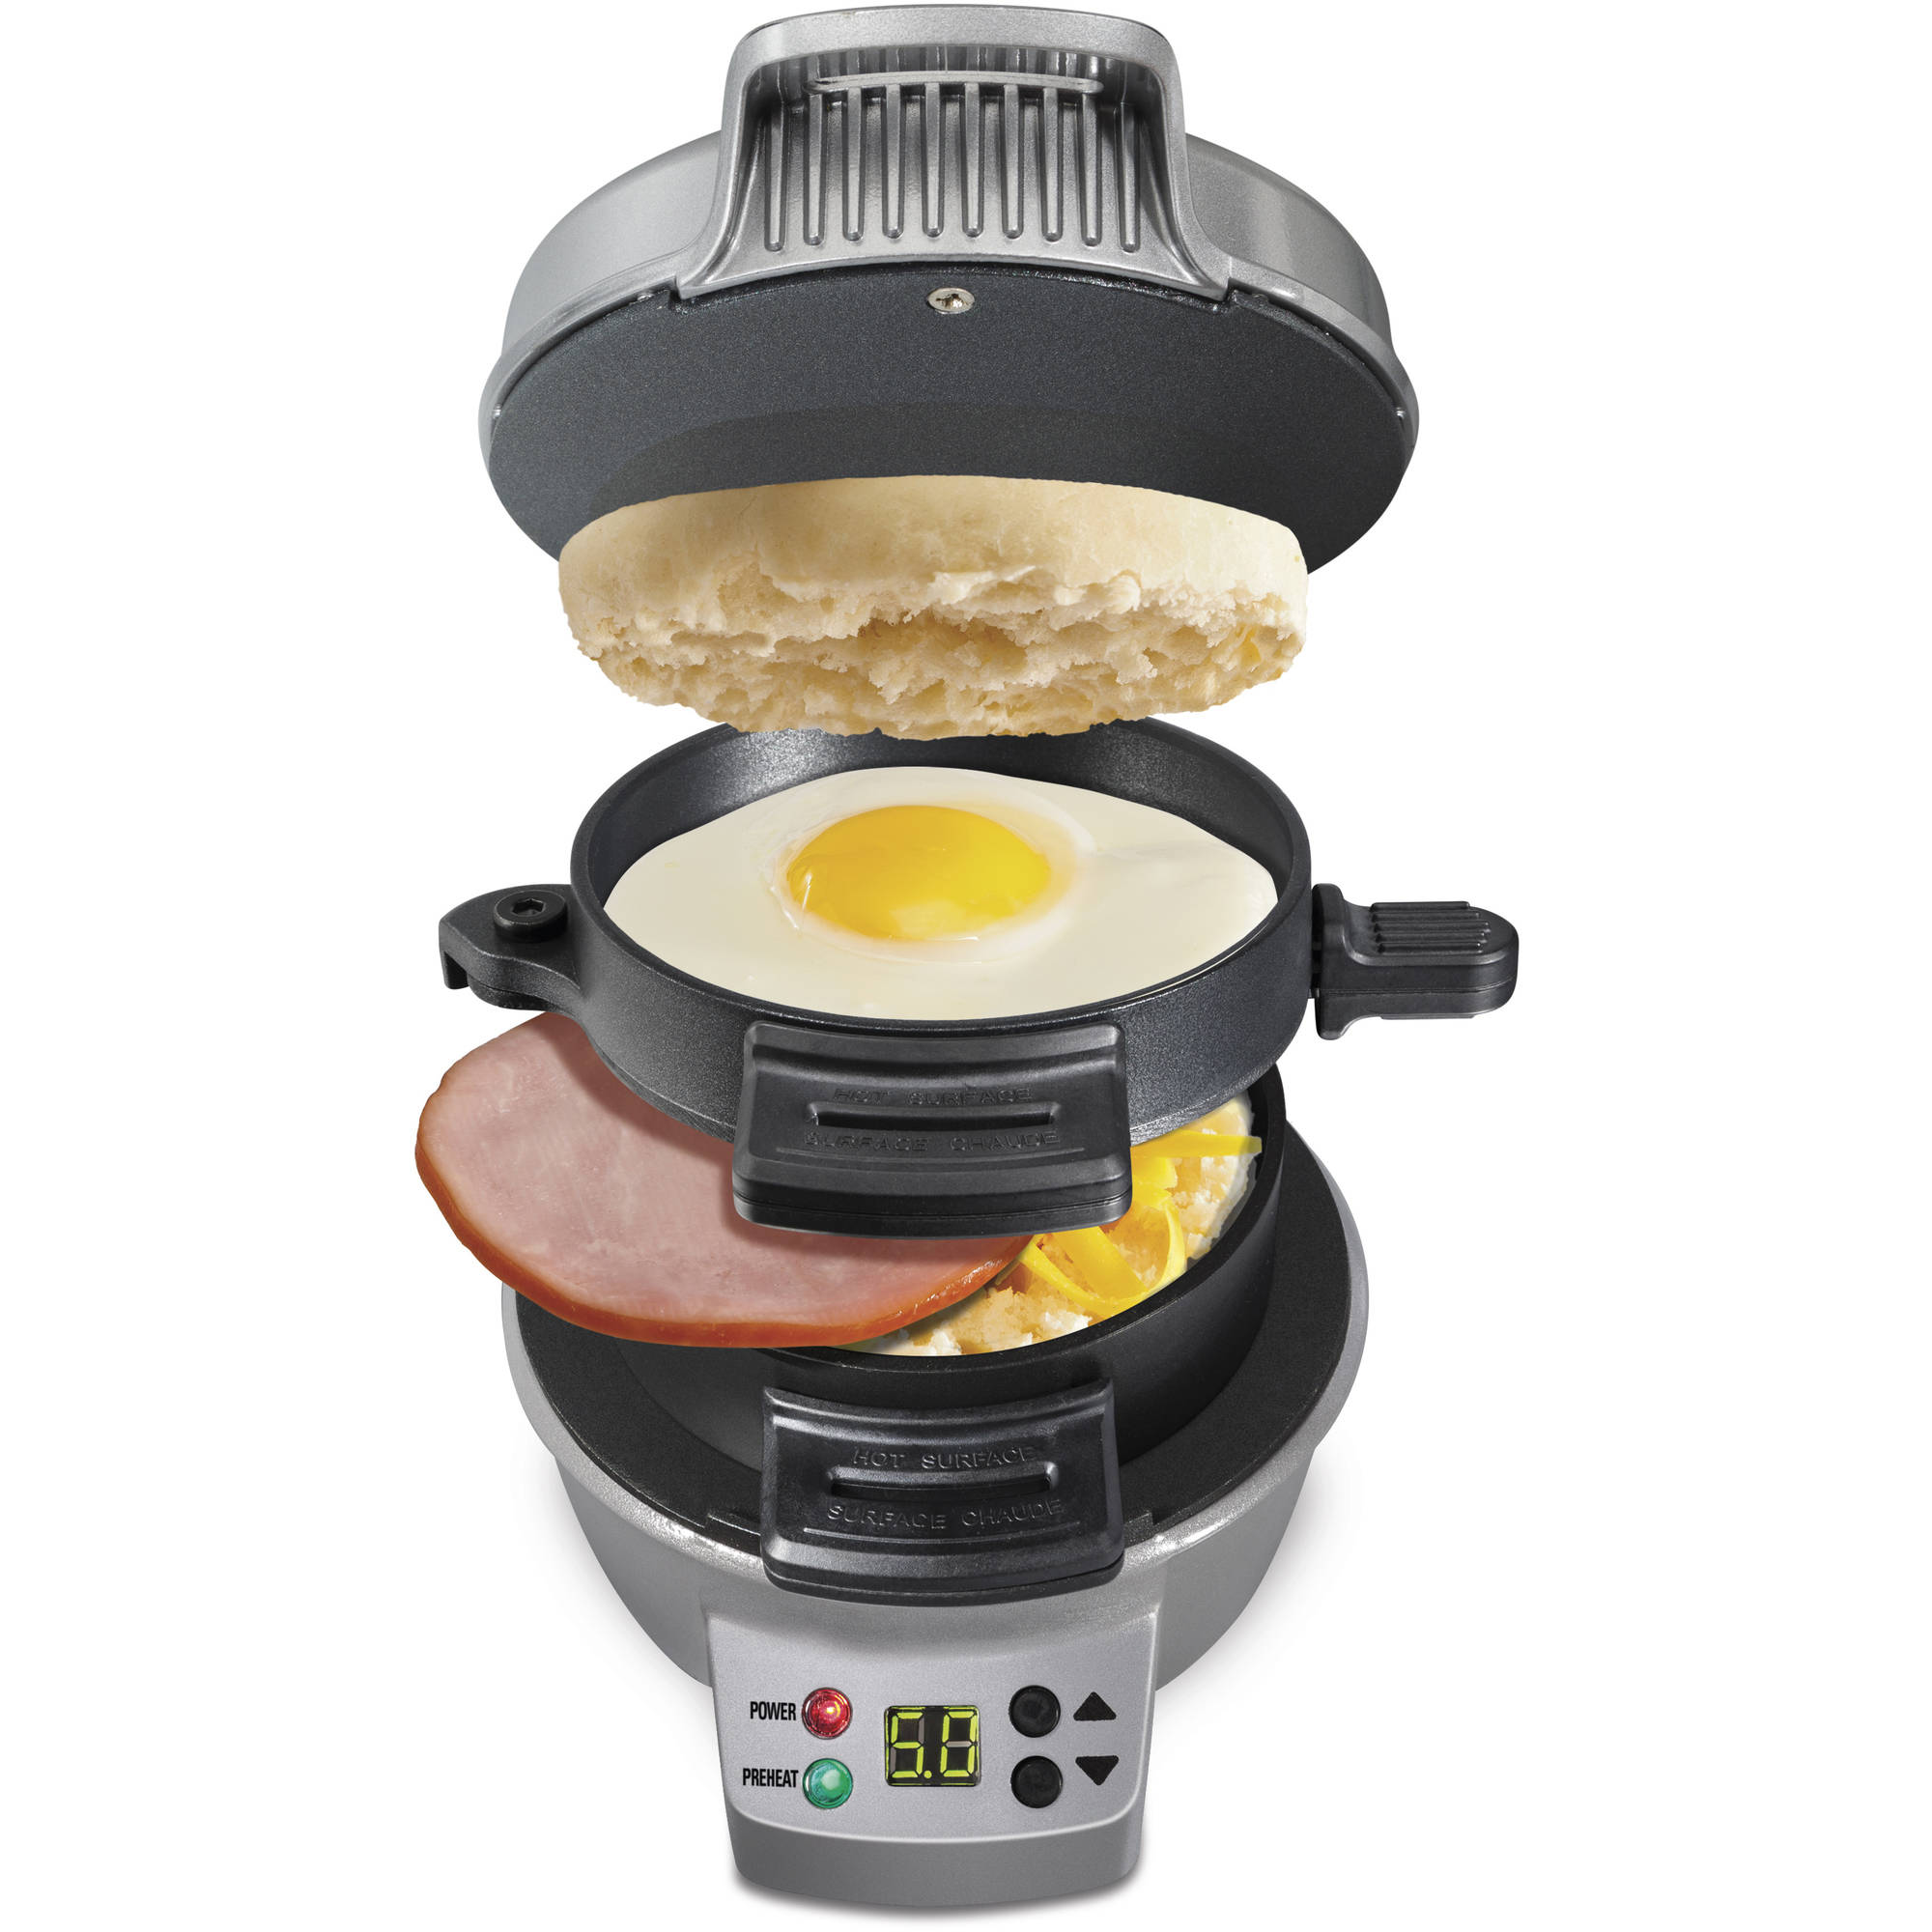 Hamilton Beach Breakfast Sandwich Maker with Count Down Timer | Model# 25478